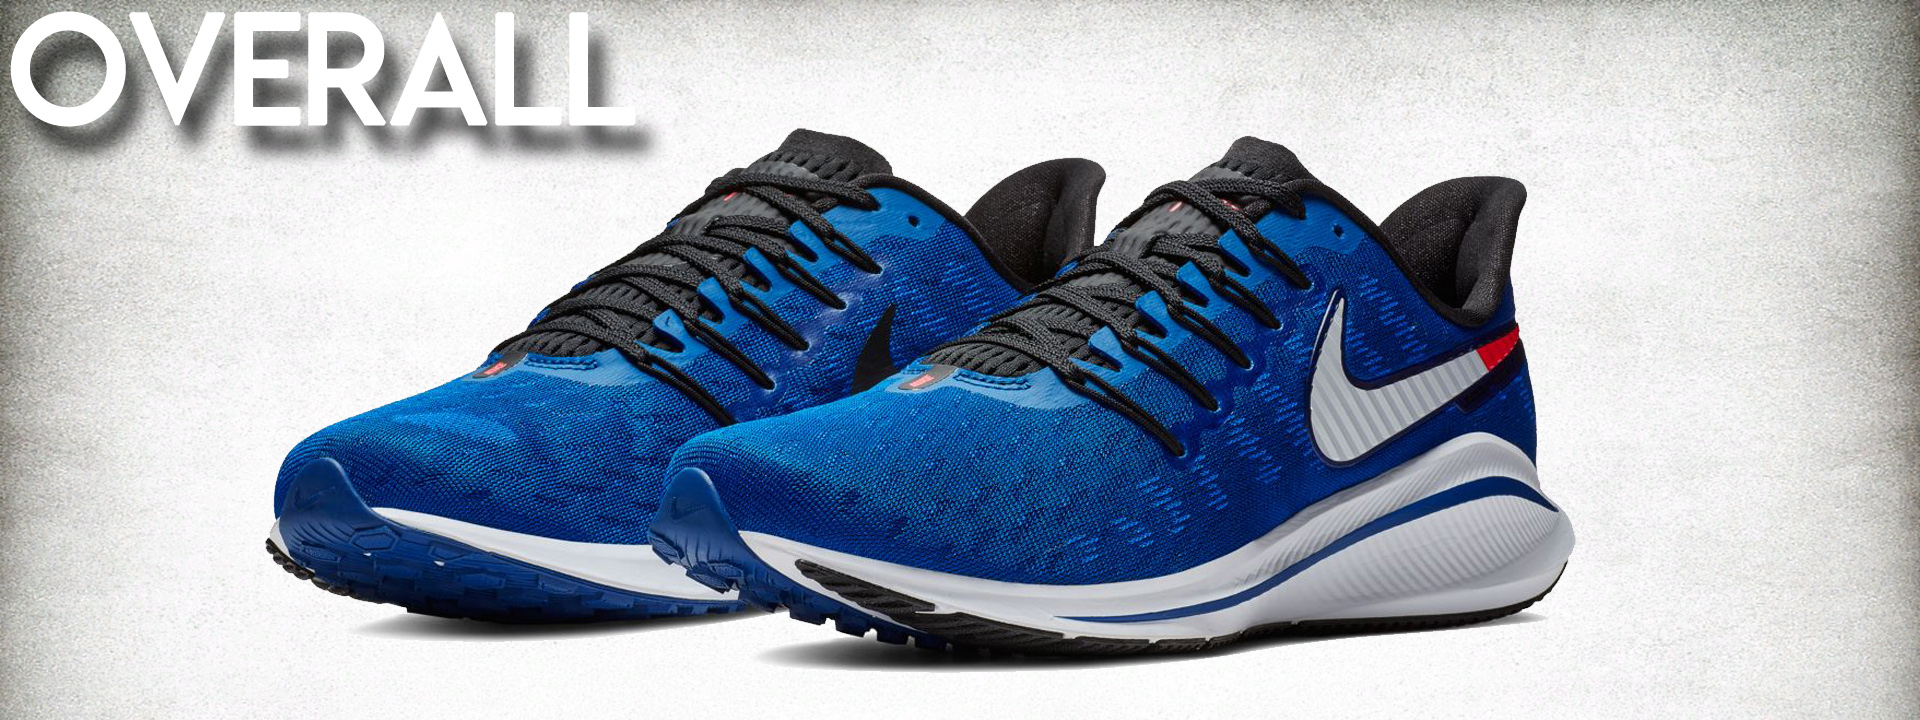 nike air zoom vomero 14 overall